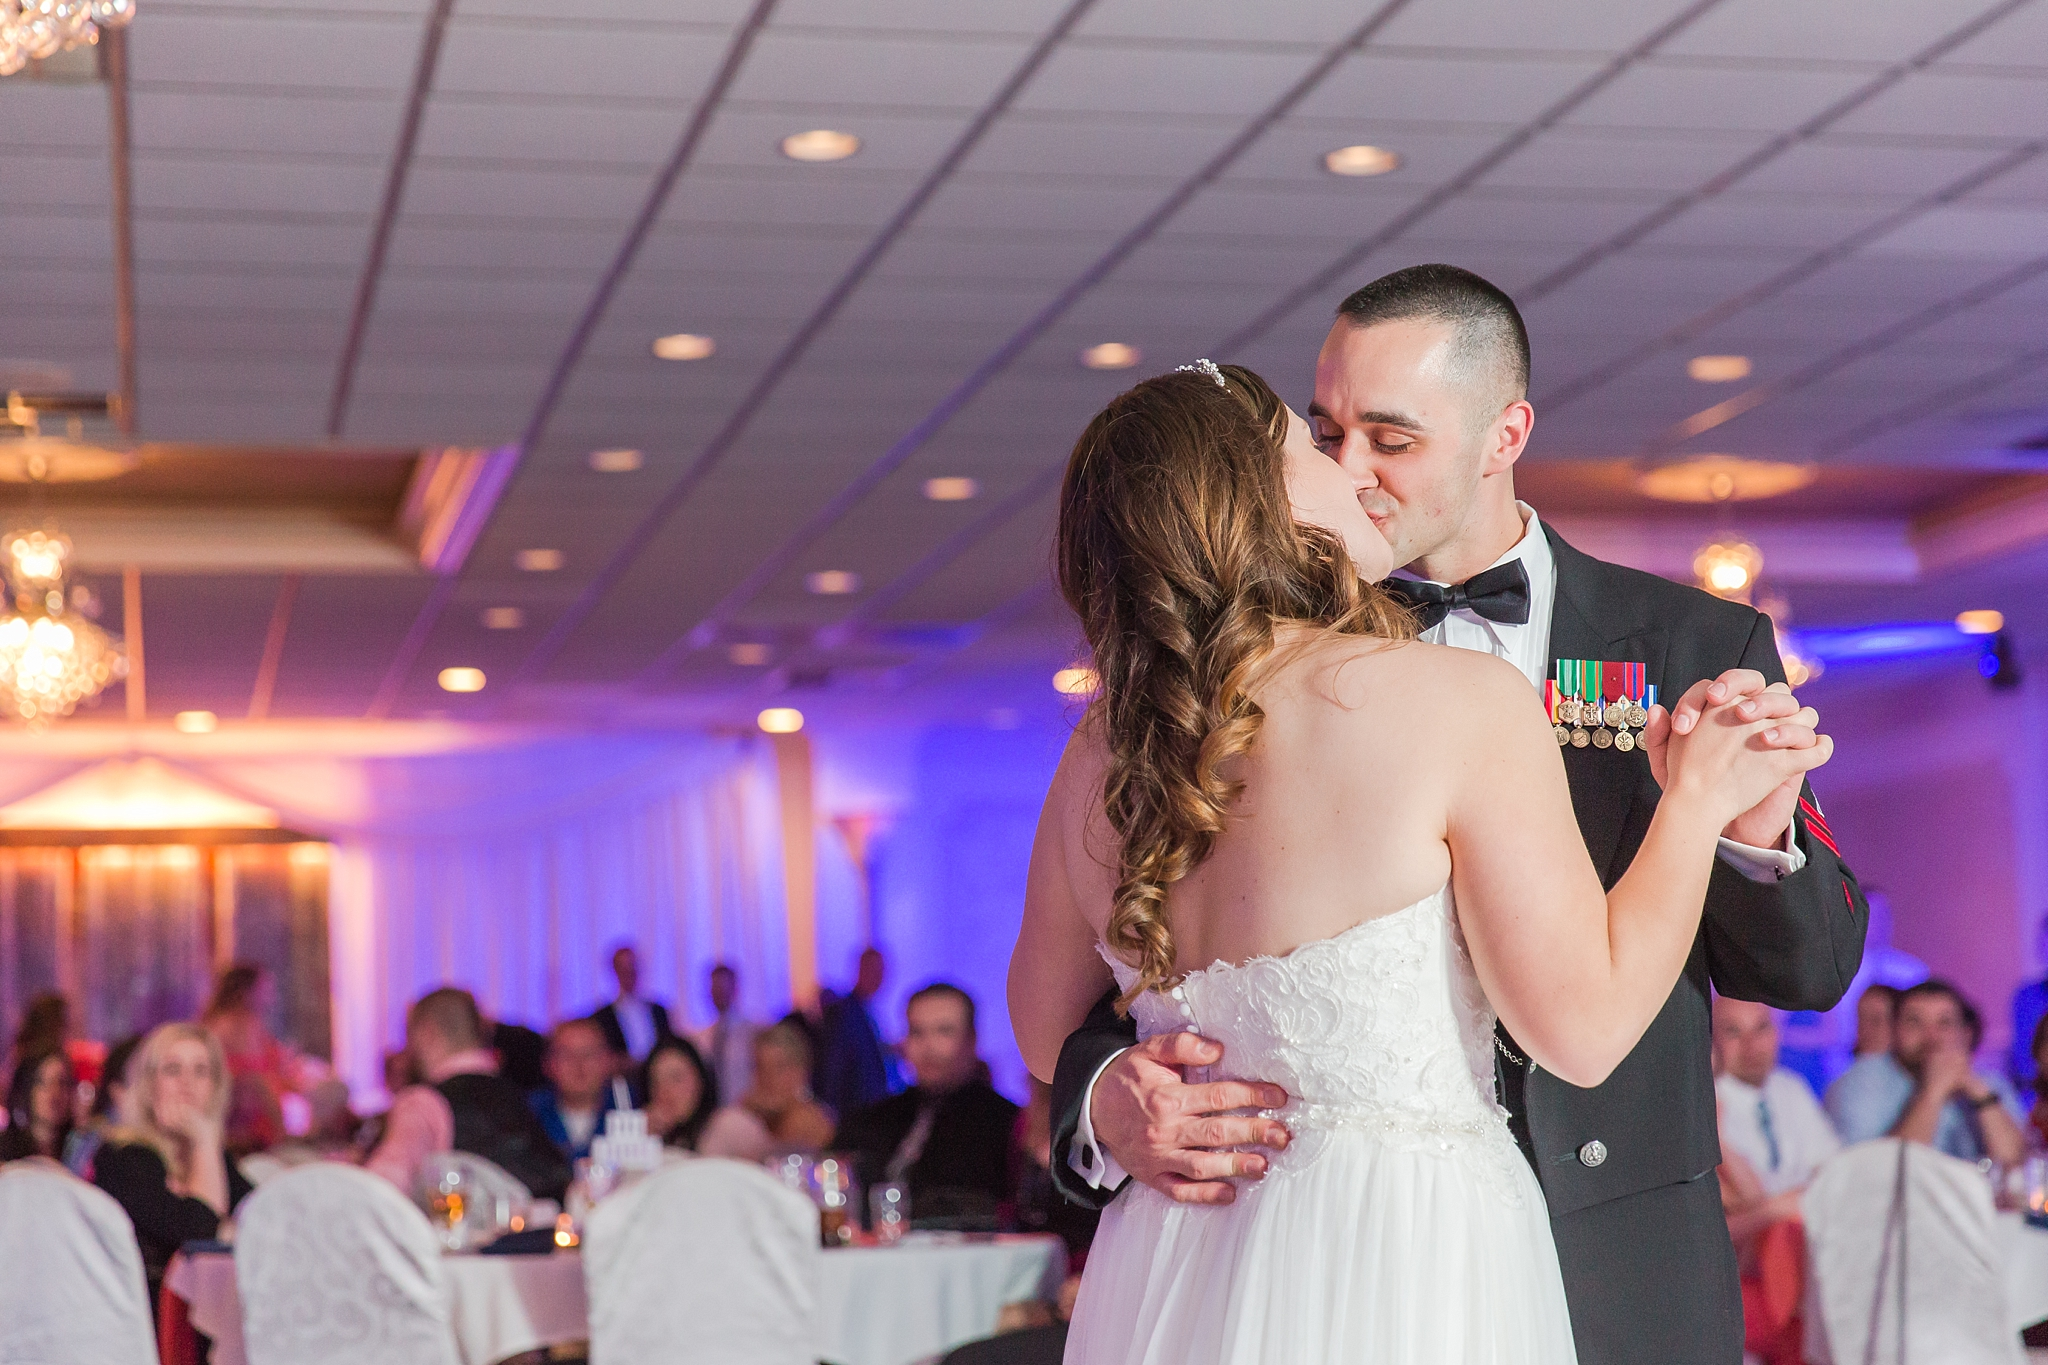 romantic-artful-candid-wedding-photos-in-st-clair-shores-at-the-white-house-wedding-chapel-by-courtney-carolyn-photography_0076.jpg